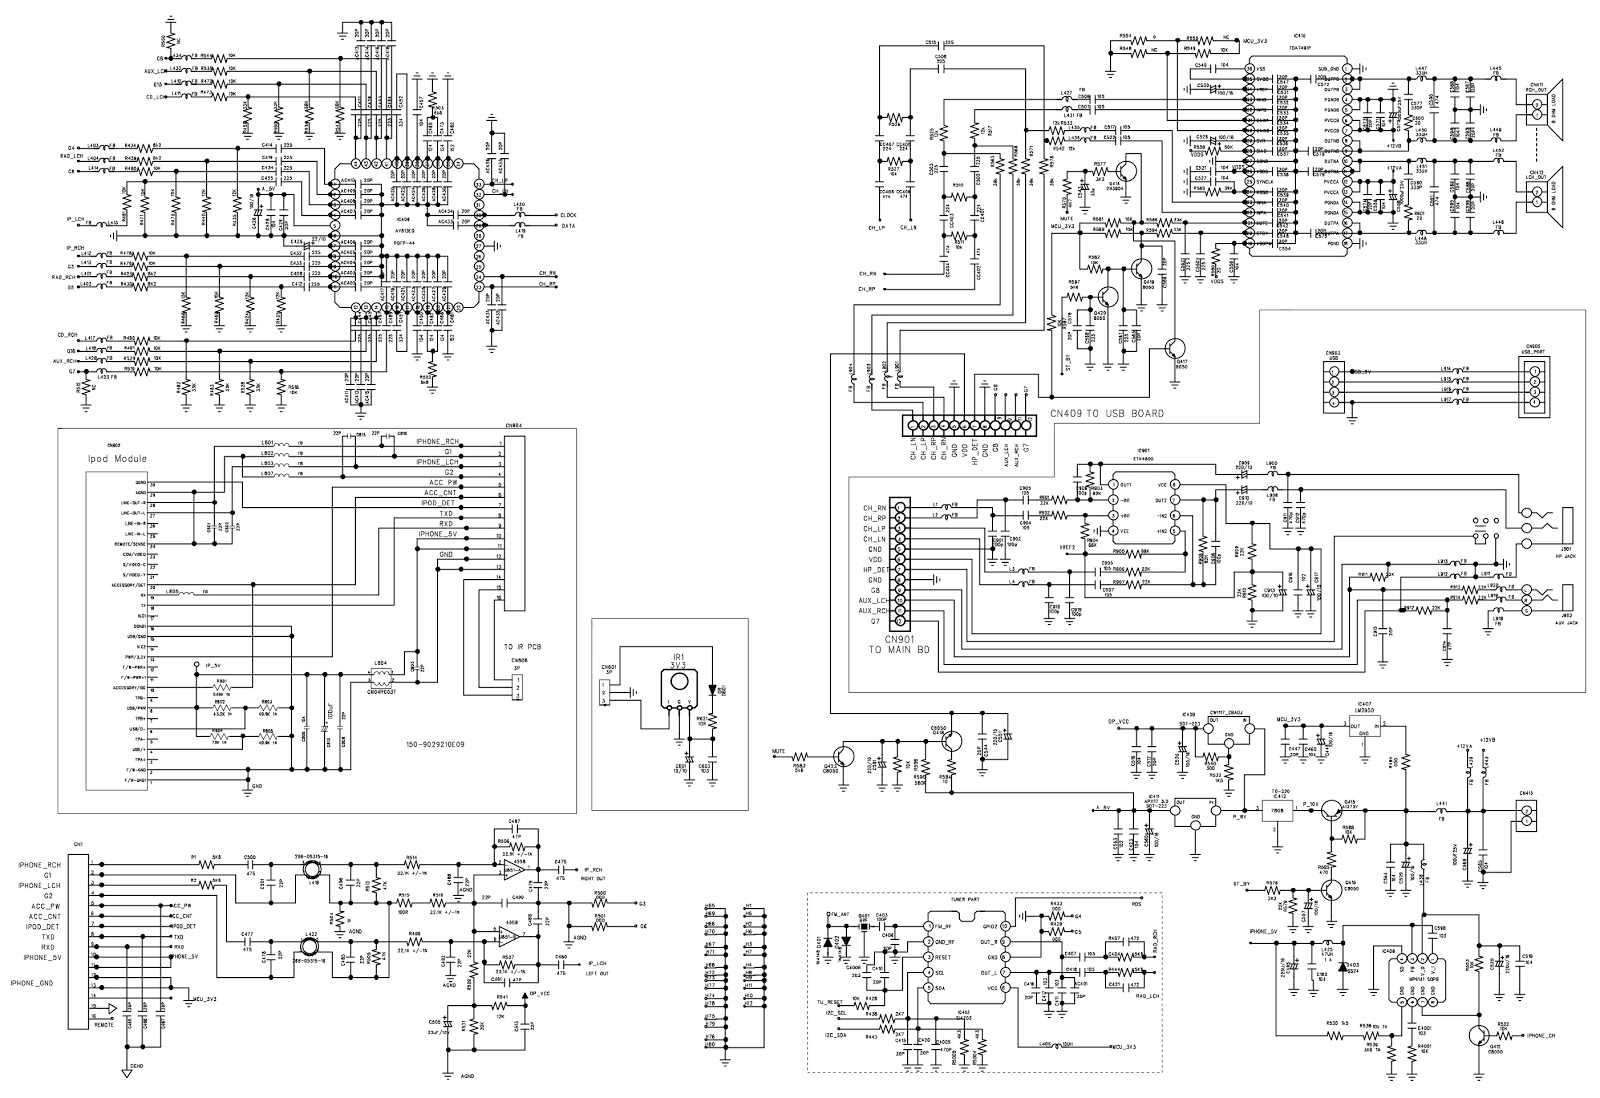 Schematic. Click on the pictures to zoom in